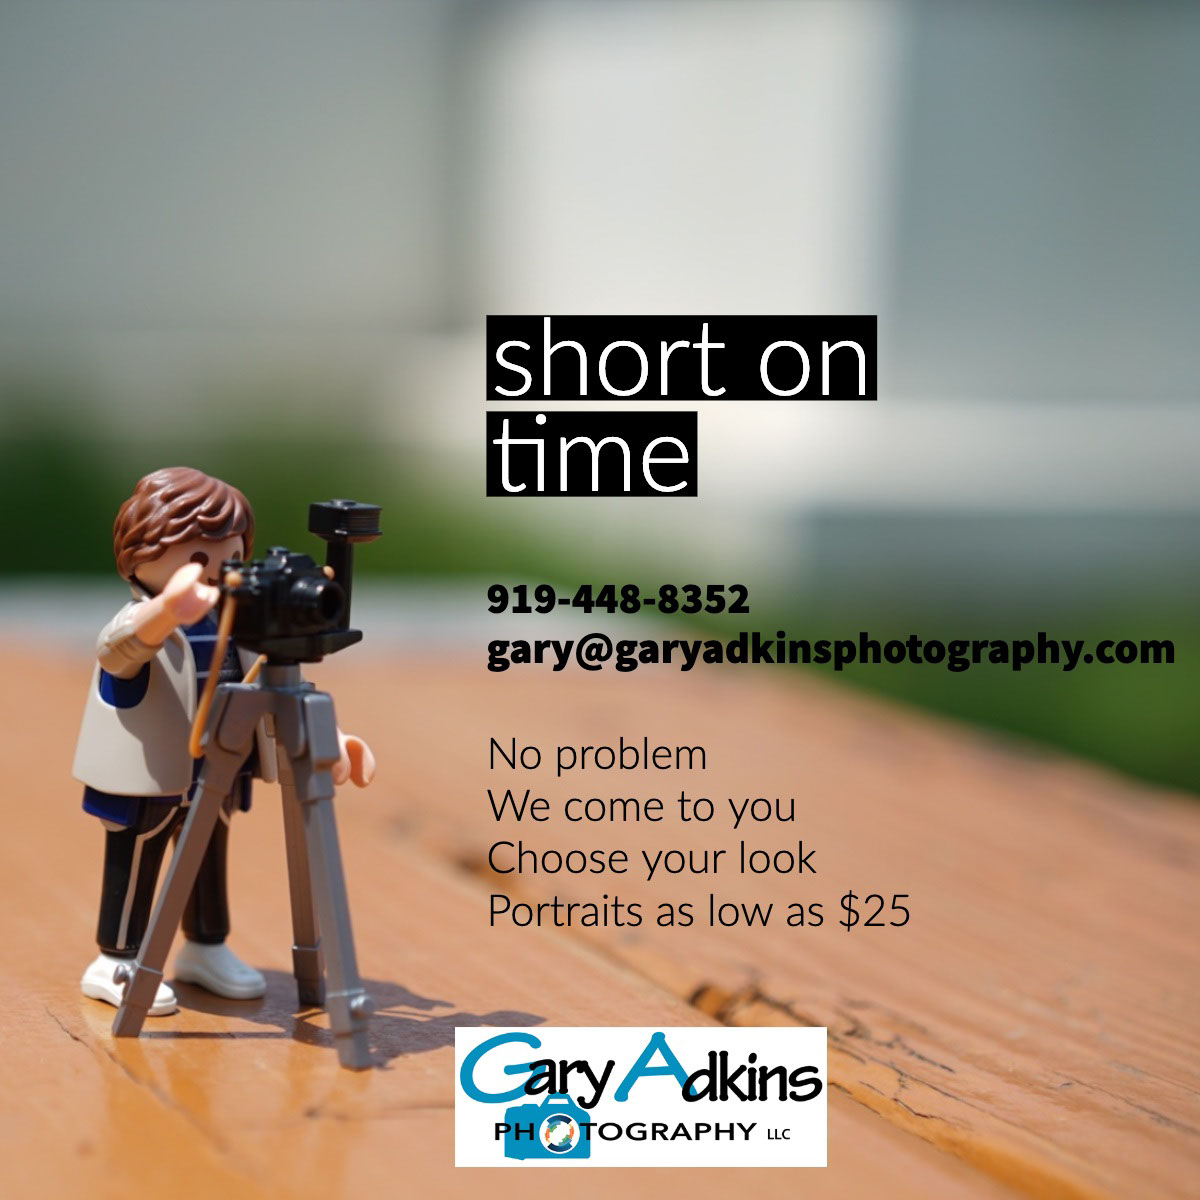 short on time short on time<P>919-448-8352<BR>gary@garyadkinsphotography.com<P>No problem<BR>We come to you<BR>Choose your look Portraits as low as $25